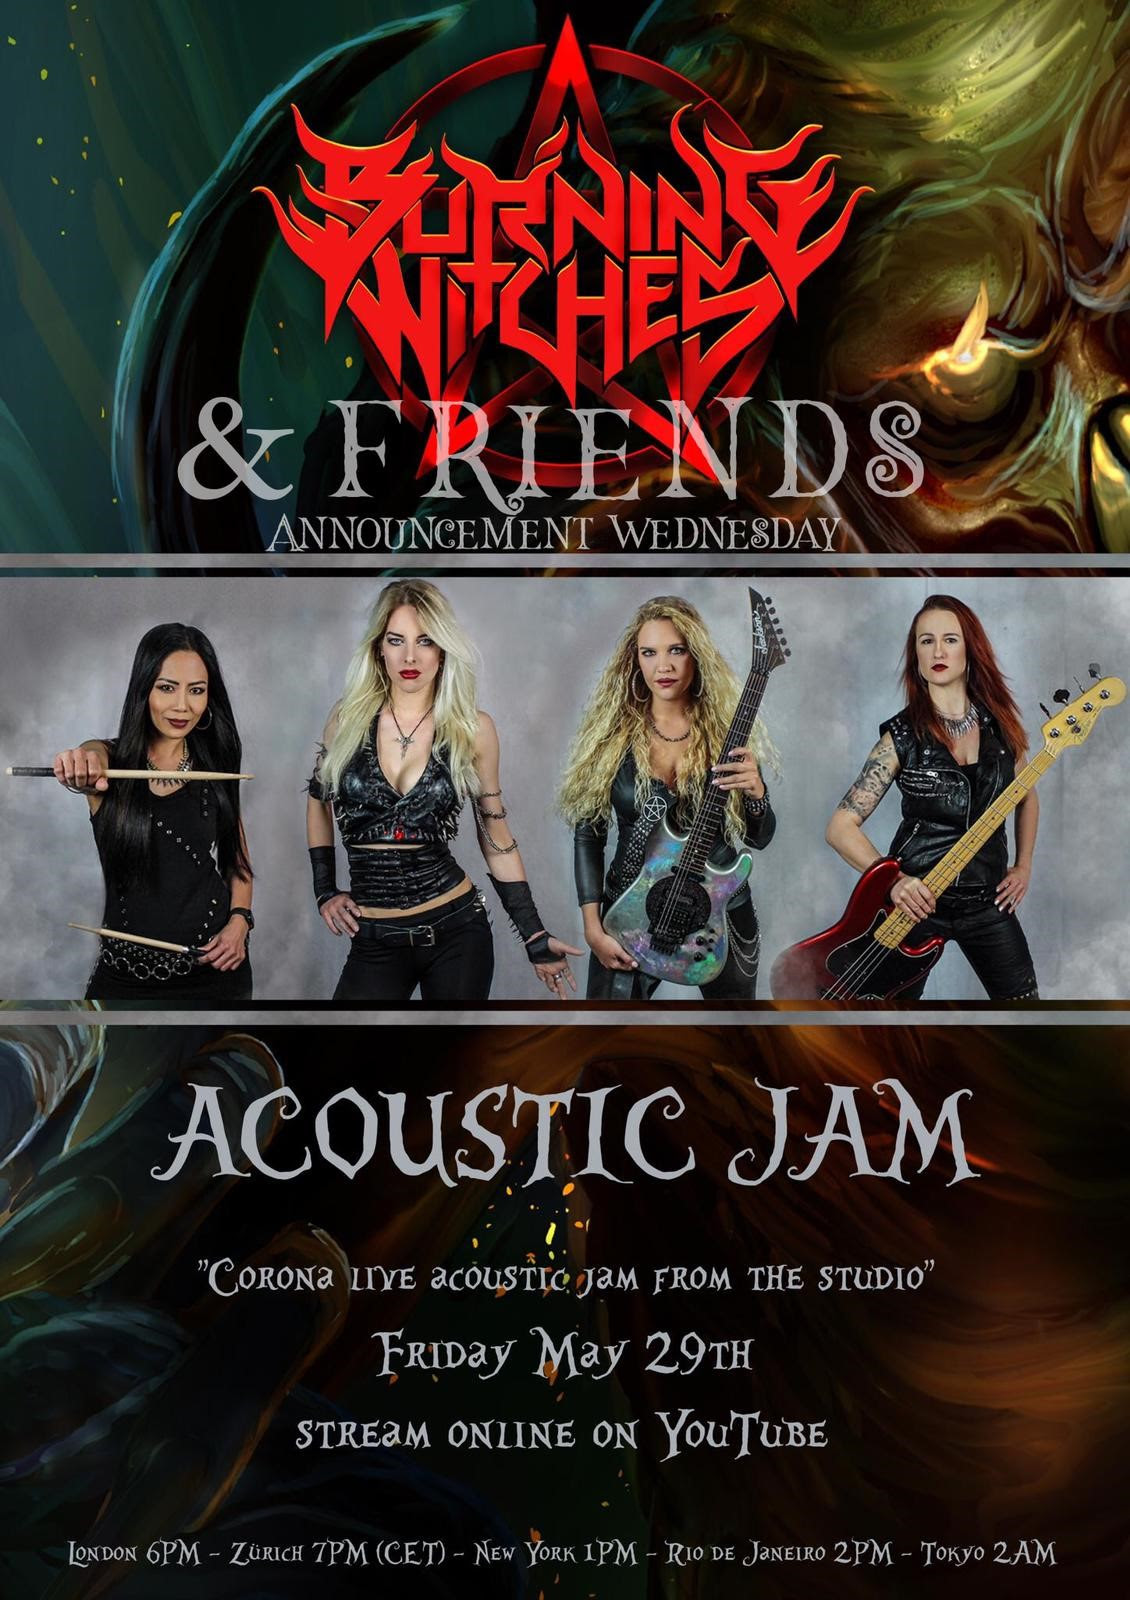 Burning Witches Announce Live Acoustical Jam With Courtney Cox And Others On 5/29